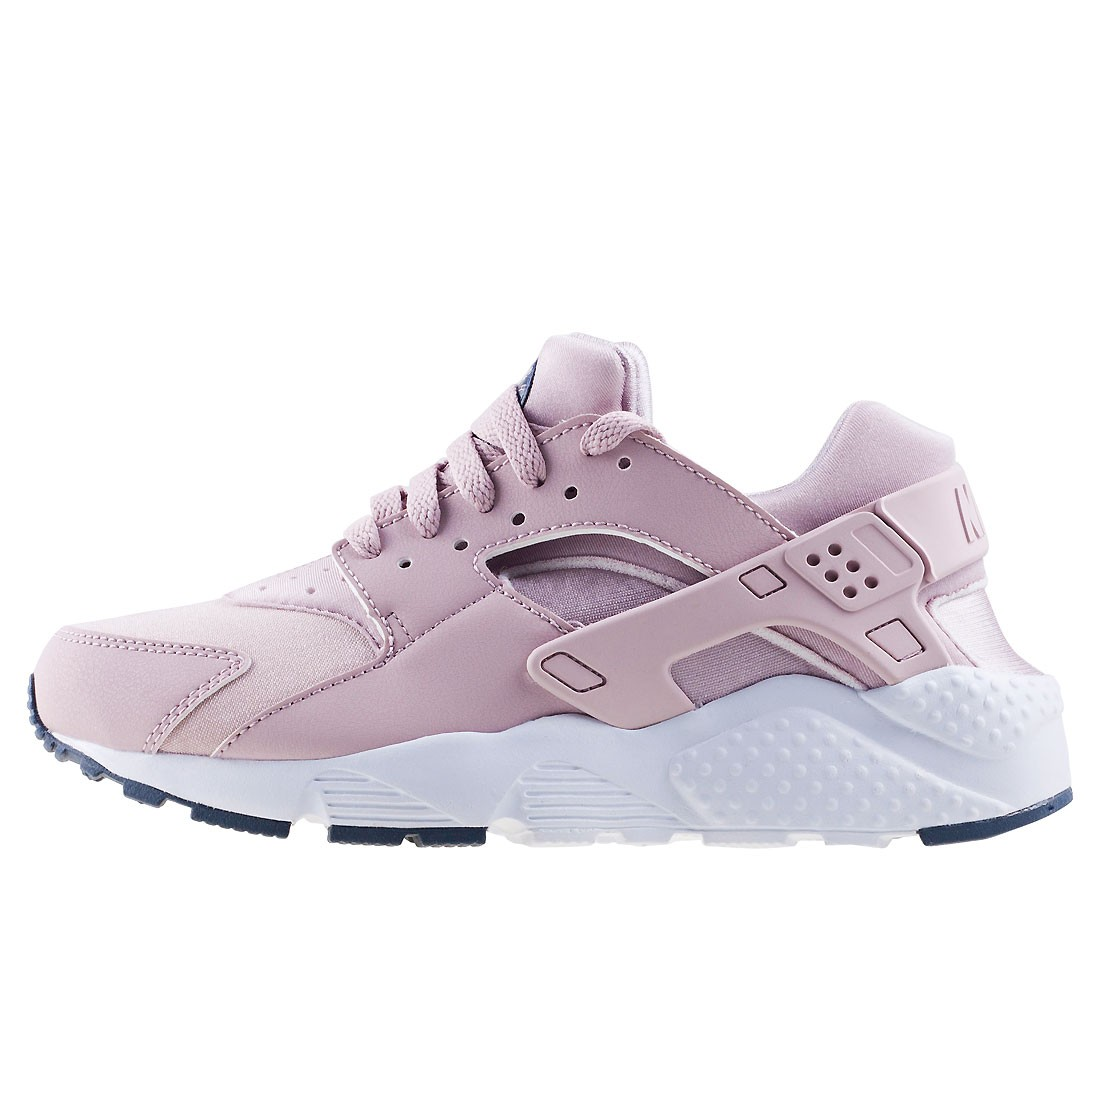 1957f0d93f9f Nike Huarache Kids   Nike × Men and Women s shoes 2018 ...